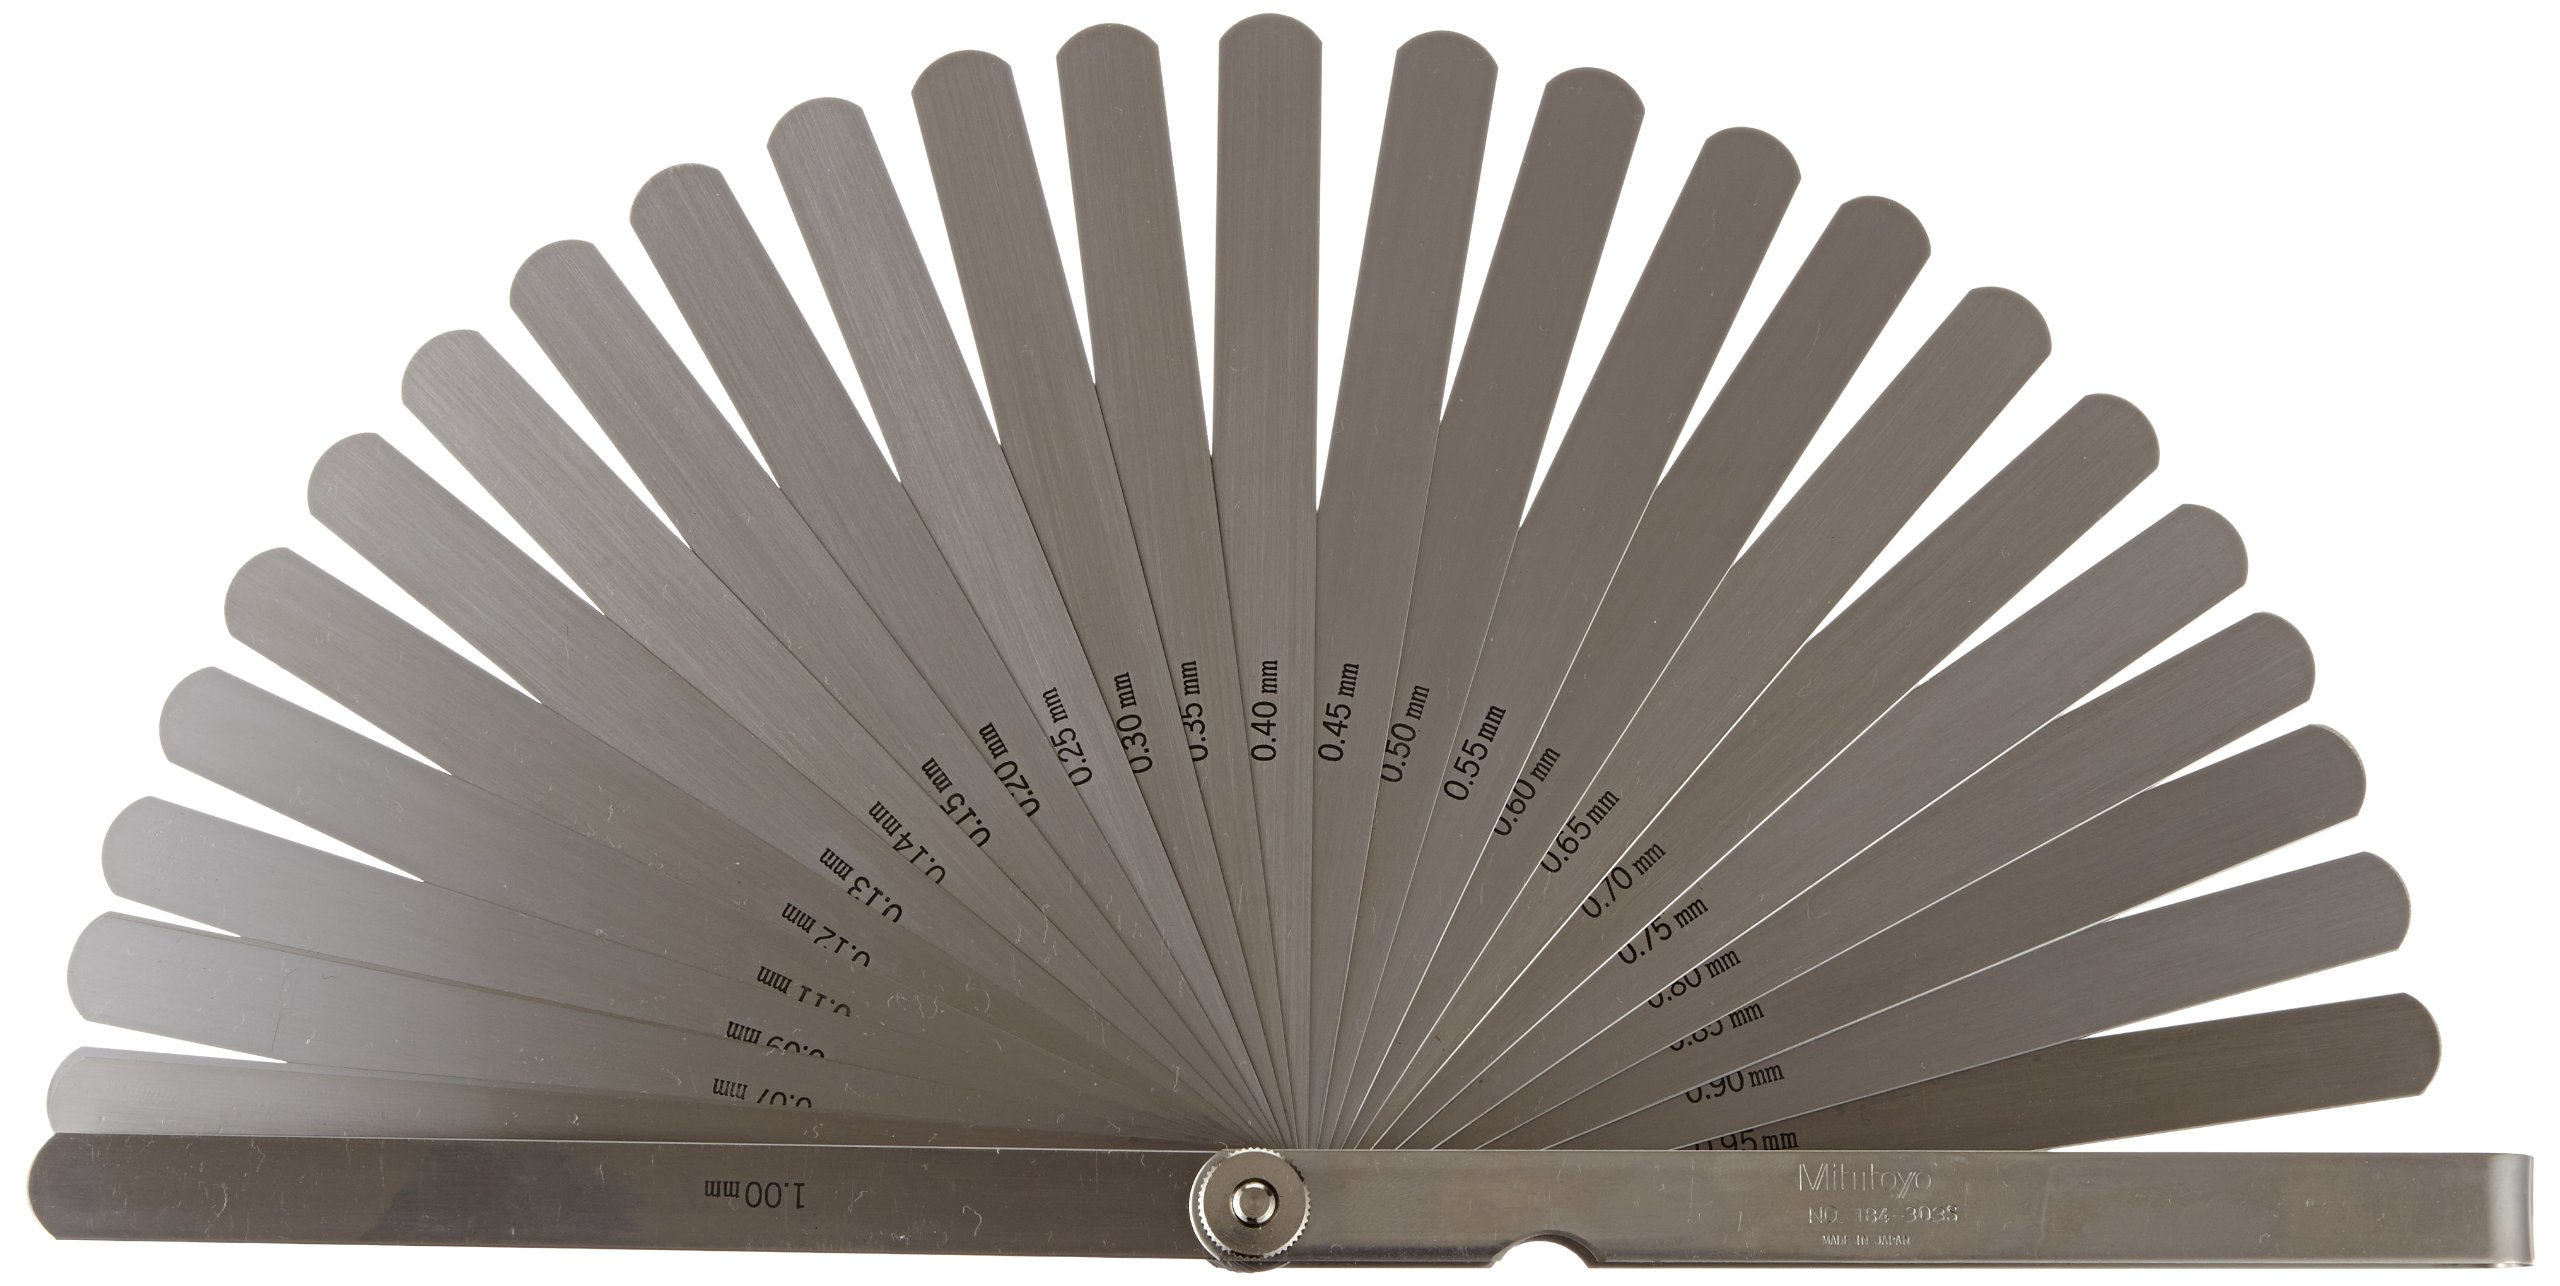 Mitutoyo 184-303S, Thickness Gage / Feeler Gage, 0.05mm to 1mm, 28 Leaves, Straight, 150mm Long Leaves